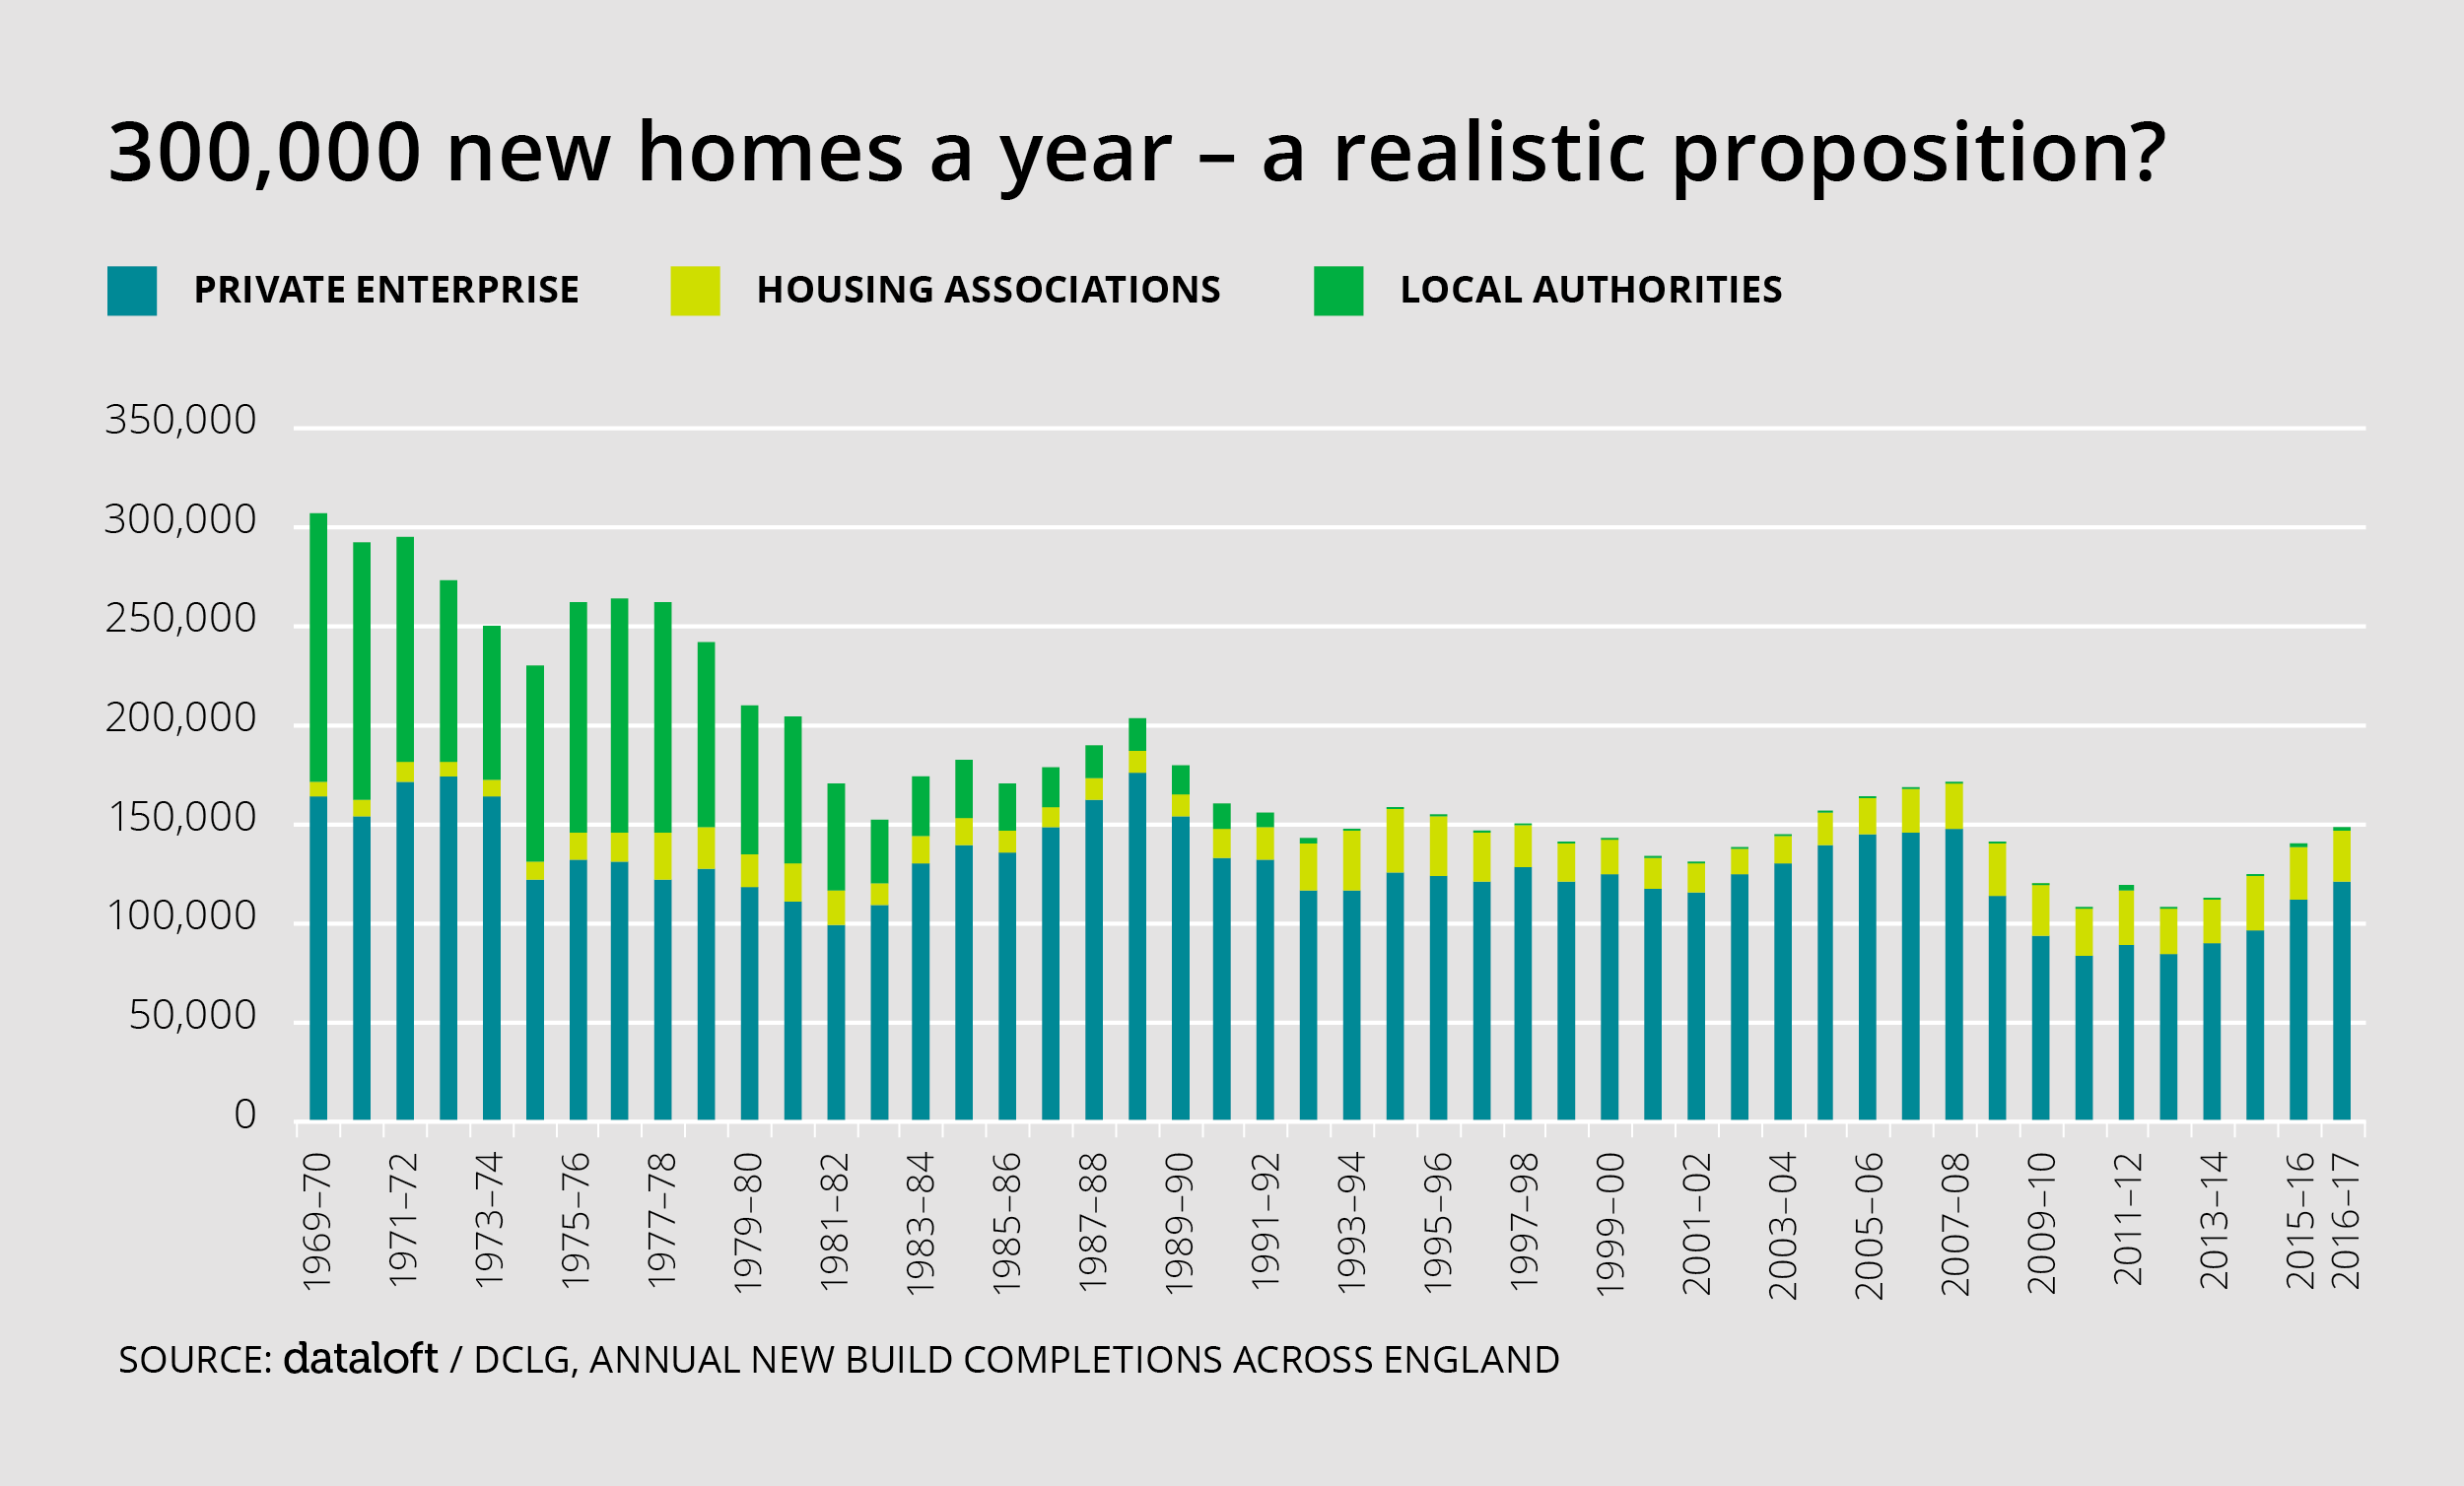 300,000 NEW HOMES A YEAR – A REALISTIC PROPOSITION?